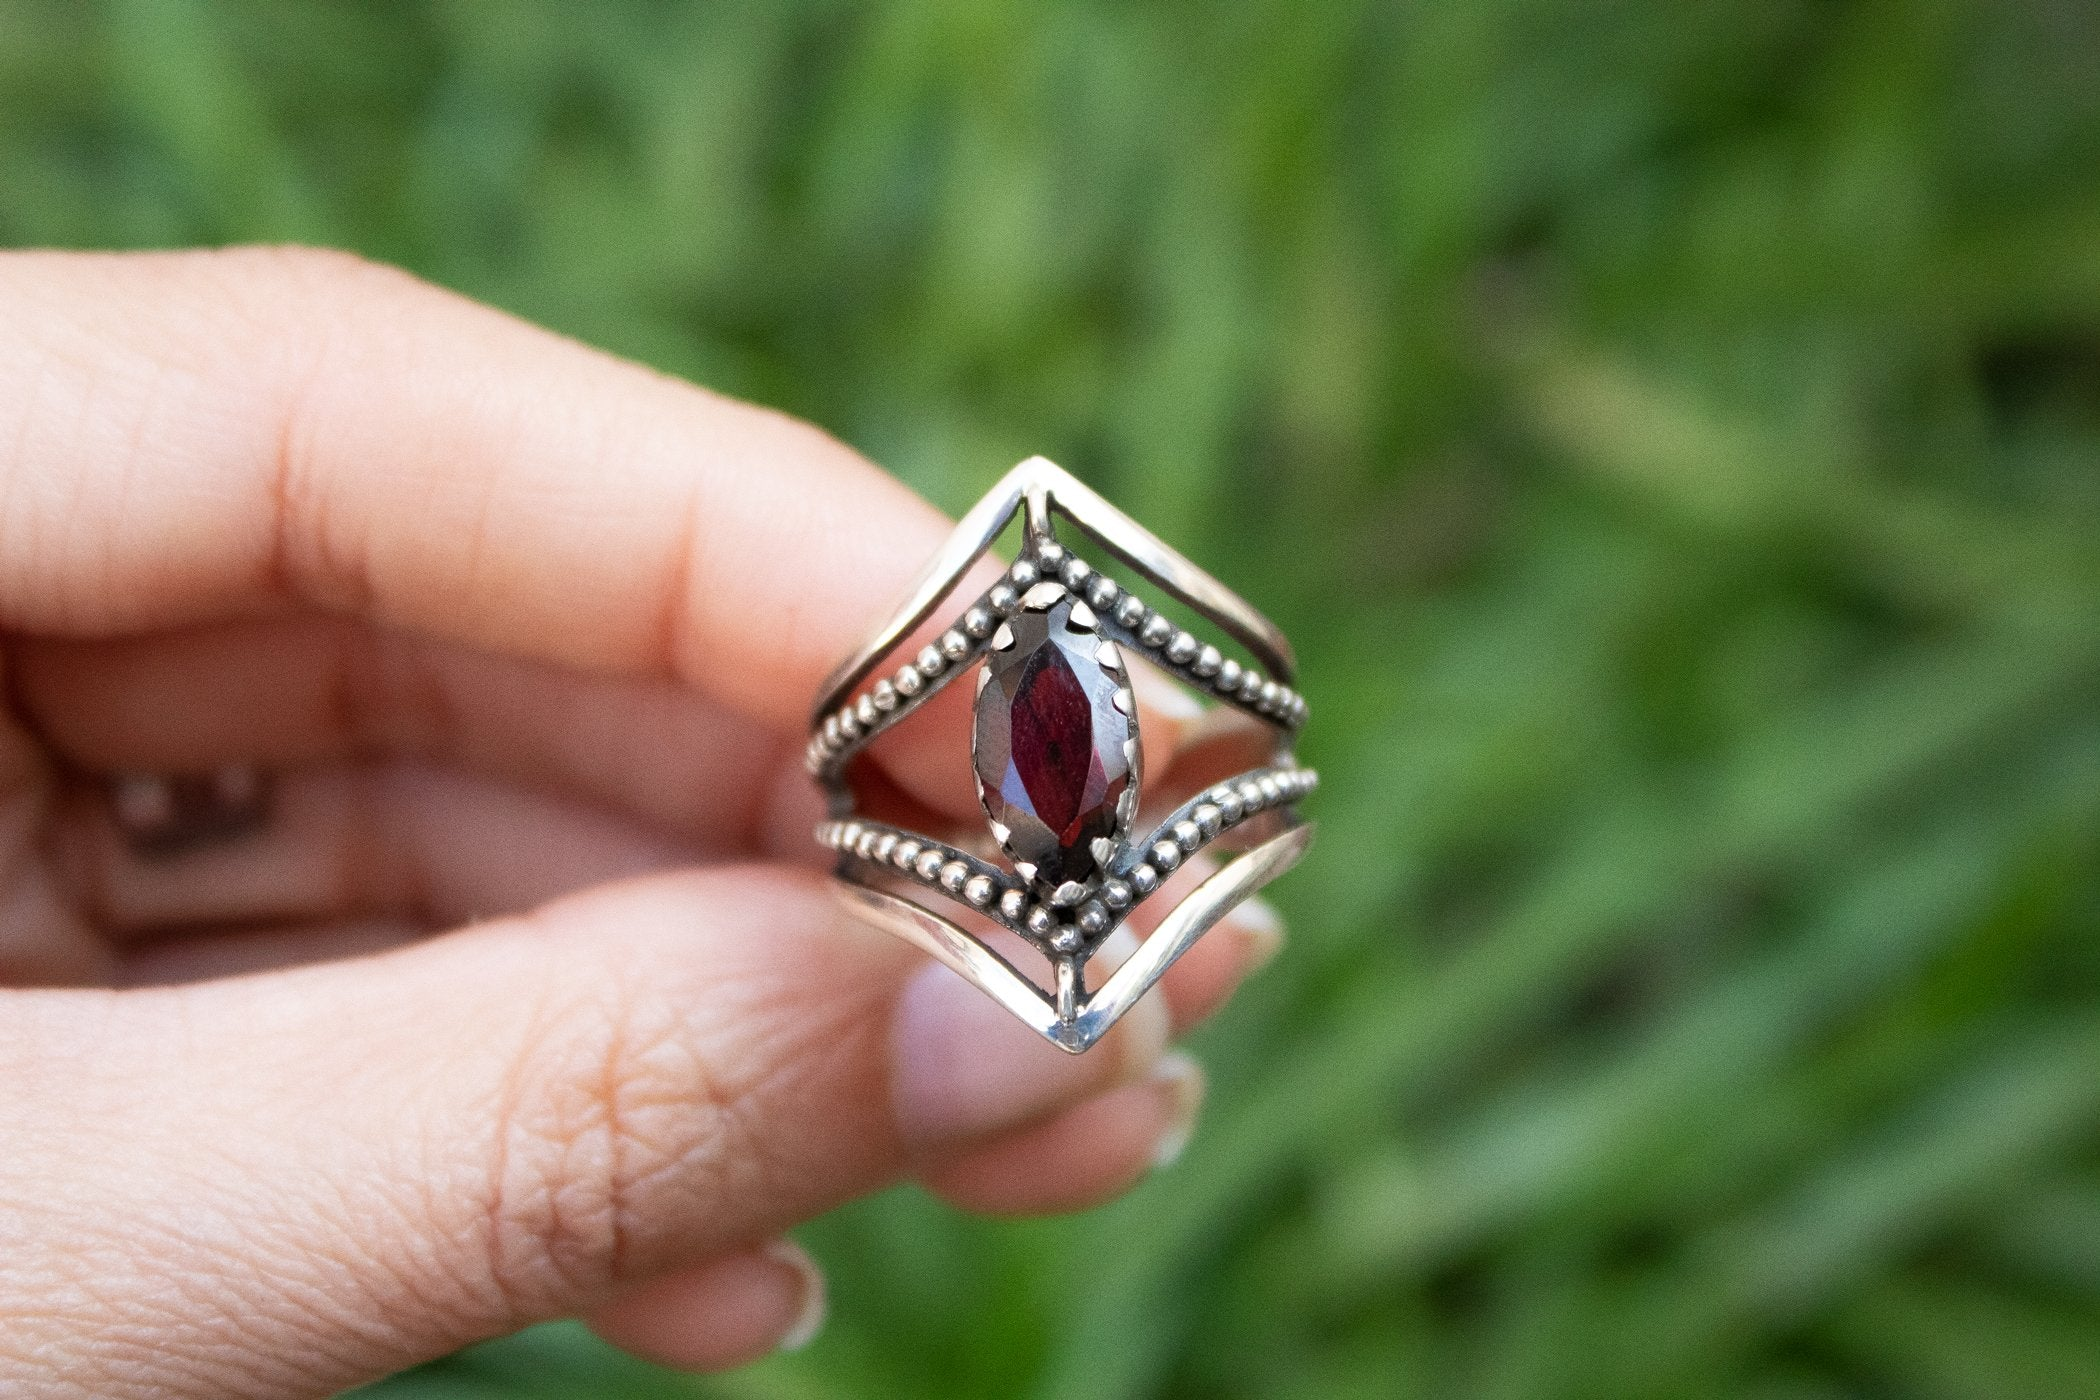 Dual Chevron Band 925 Sterling Silver Garnet Ring AR-2036 - Its Ambra